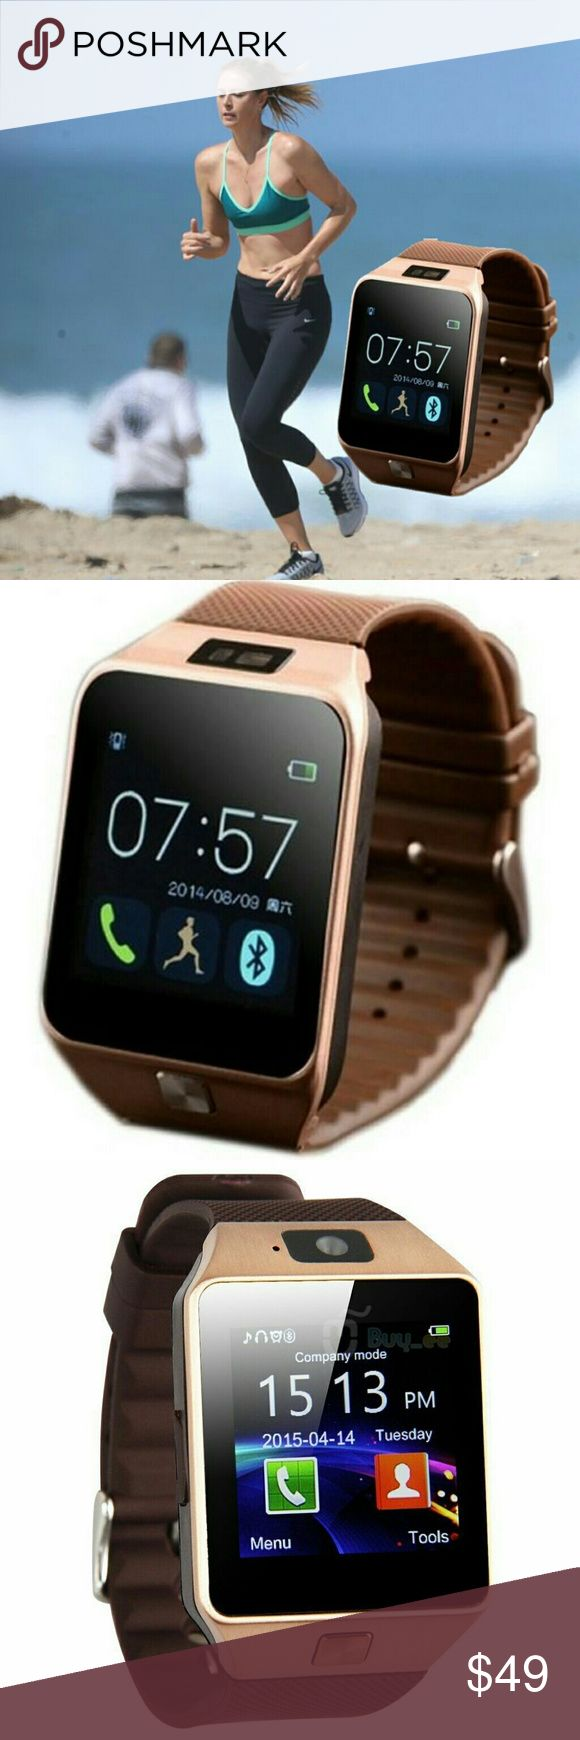 Bluetooth Smart Wrist Watch iPhone LG G Stylo etc Brand New Smart watch for Android, iPhone, IOS, HTC, LG phone and Samsung Built in antenna and FM Radio built in camera, video recorder, mp3 / mp4. GSM Unlocked w/Facebook and WhatsApp functionality!  Download and play music! Take pictures without your phone  Capture videos with Memory card   √GSM UNLOCKED √Pedometer  √Monitor your sleep quality  √Search your watch for contacts  √Add contacts directly to your watch  √Anti-lost Technology…